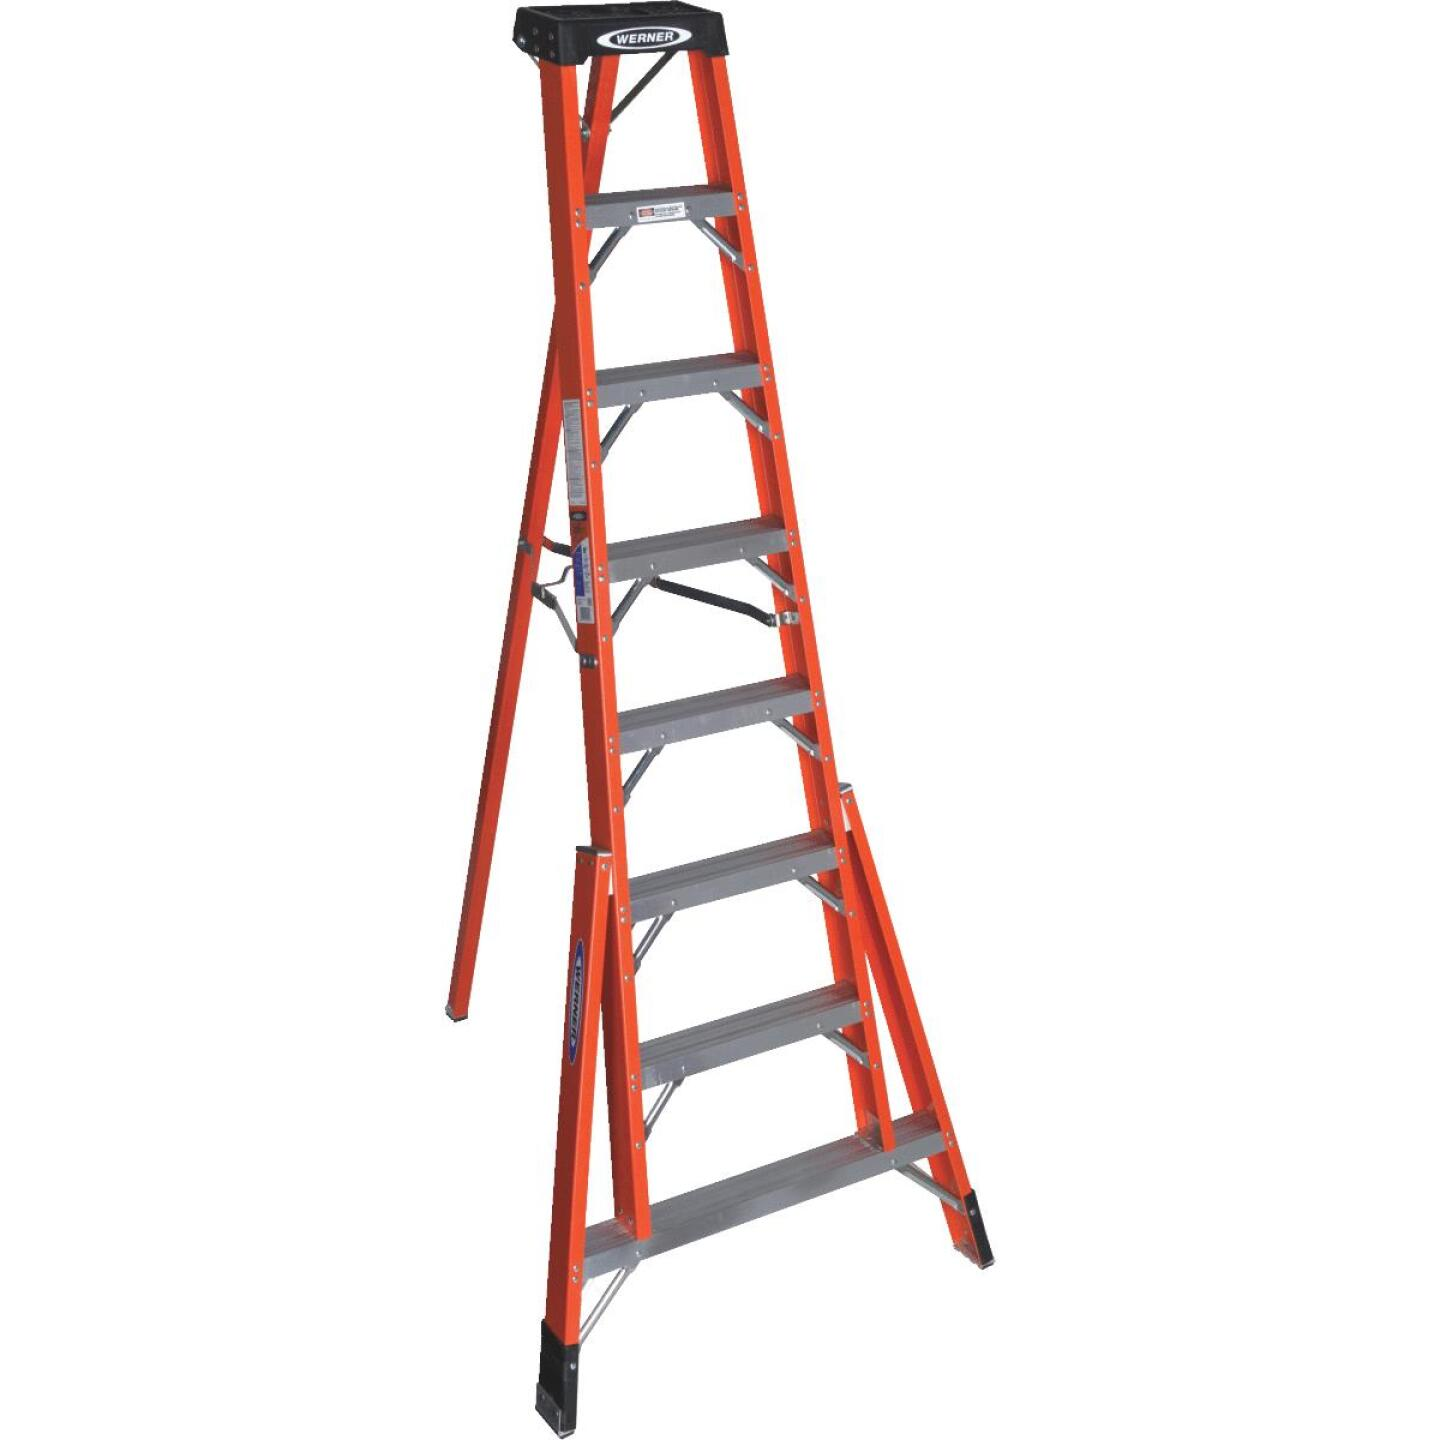 Werner 8 Ft. Fiberglass Tripod Step Ladder with 300 Lb. Load Capacity Type IA Ladder Rating Image 2